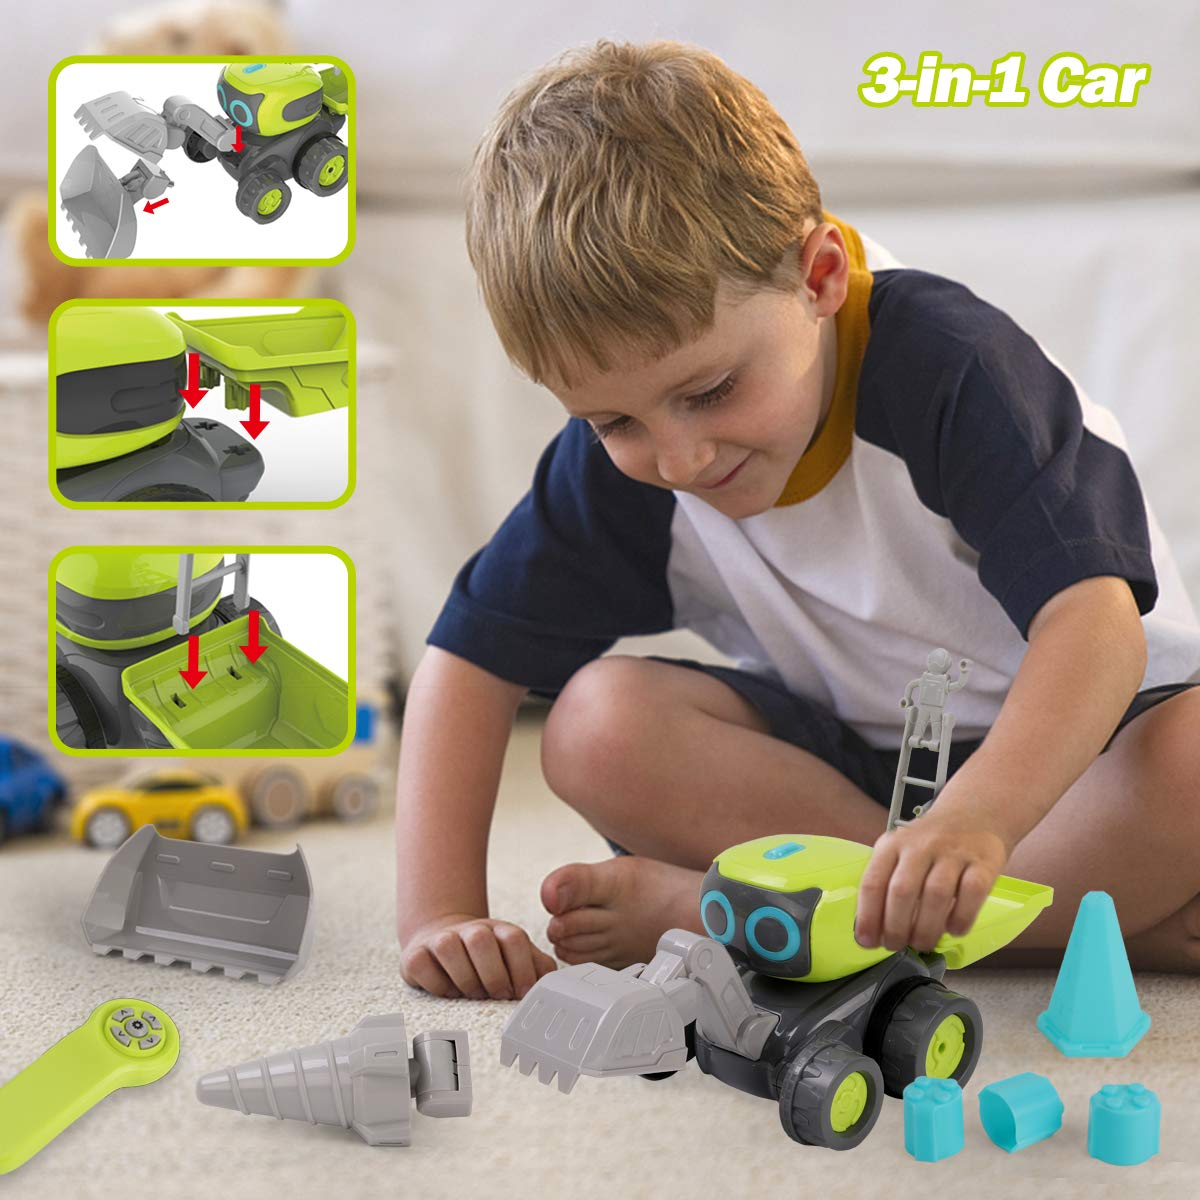 Remoking STEM RC Remote Control Engineering Robot Vehicle Toy, Smart Intelligent Electronic Educational Construction Car, Interactive Novelty Funny Gift of Building Block for Ages 3 and up by REMOKING (Image #2)